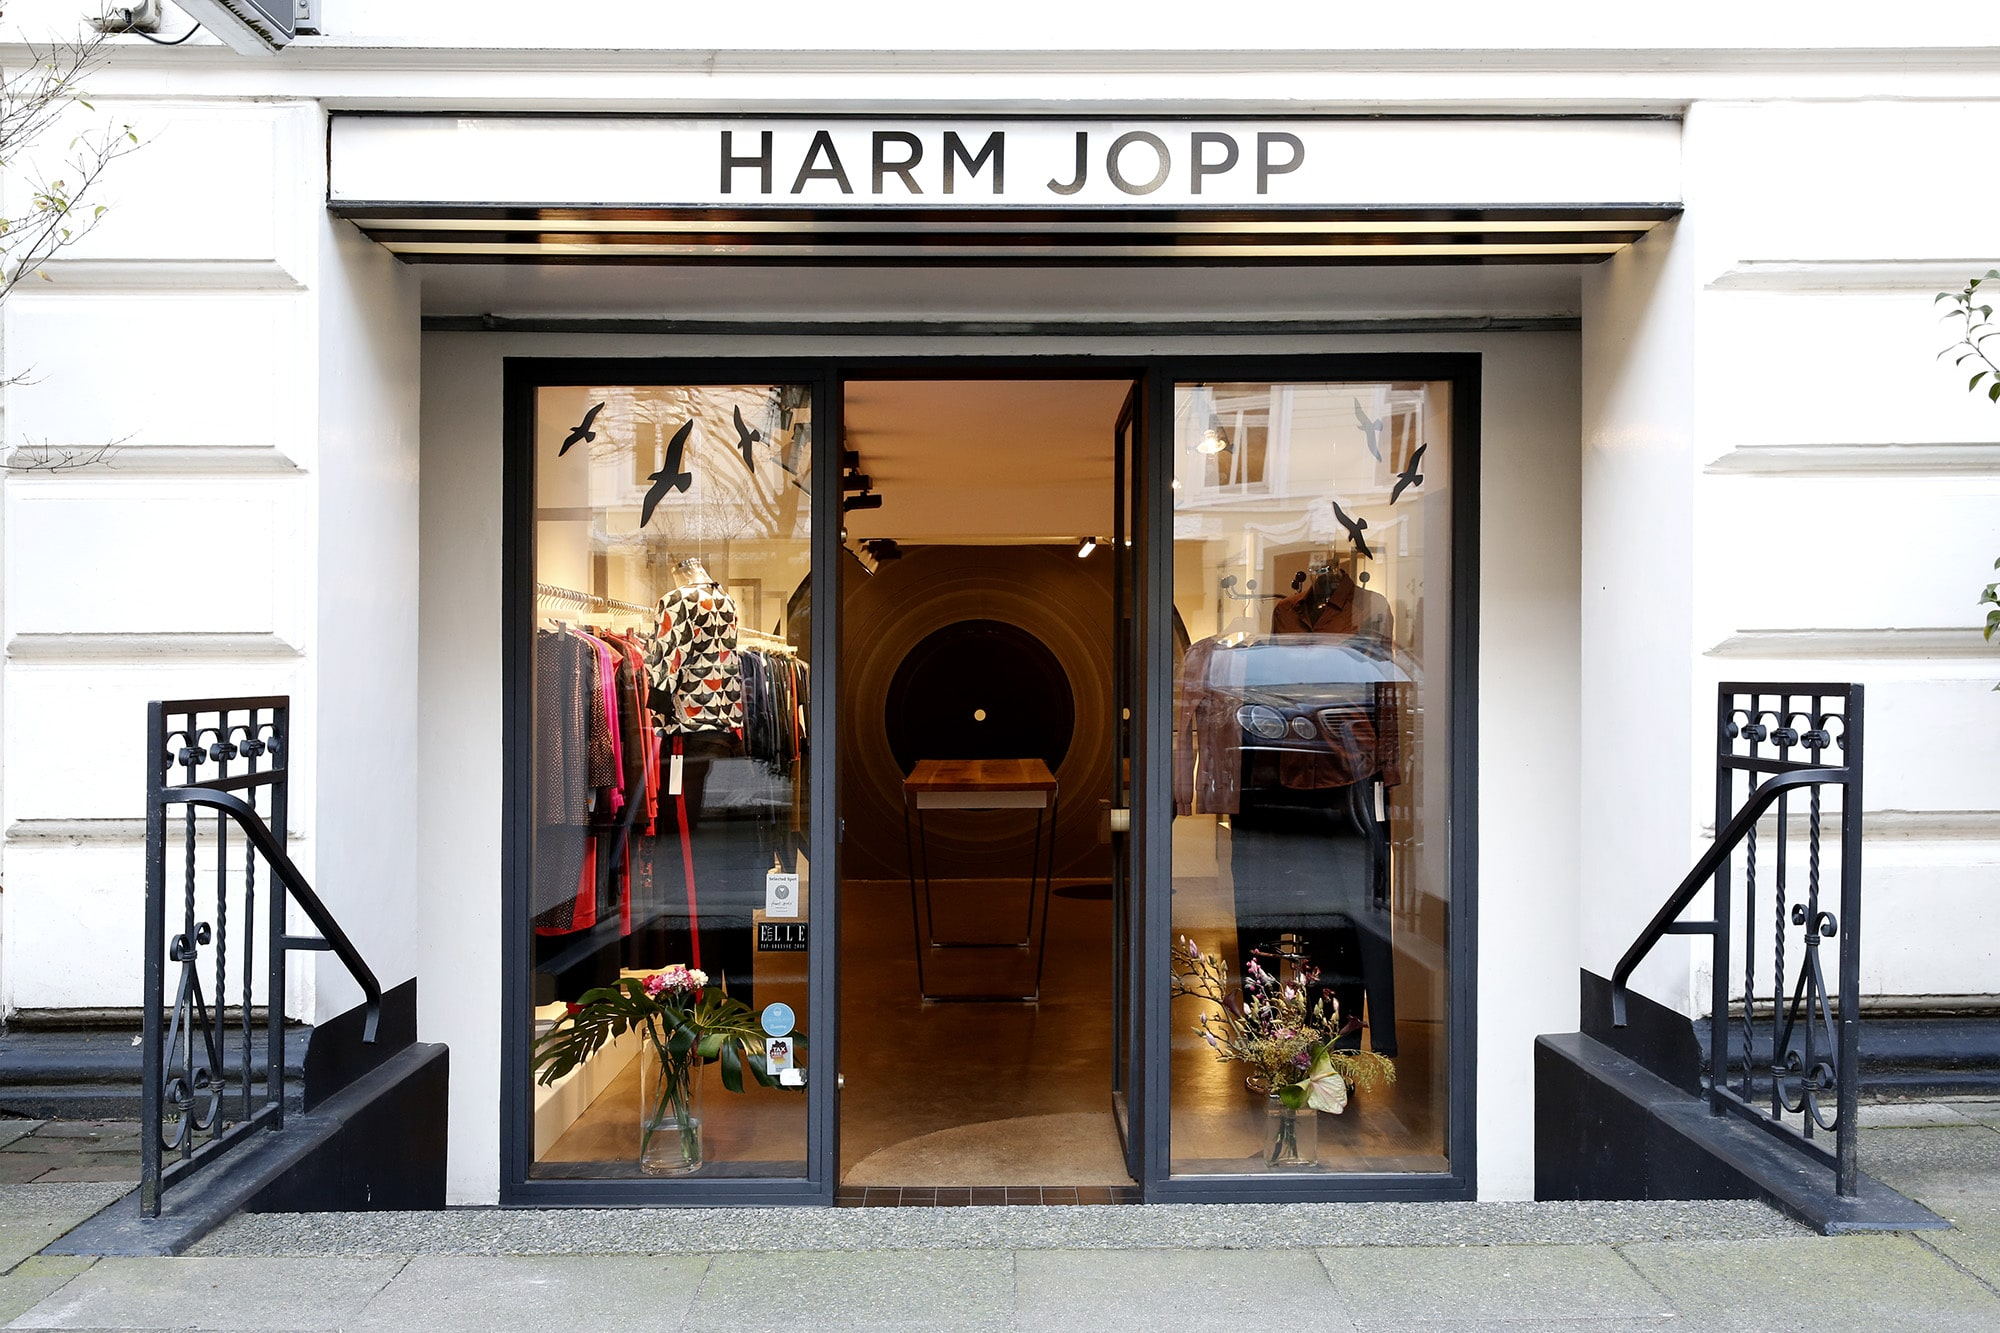 Harm Jopp Jerseys. Laden Hamburg